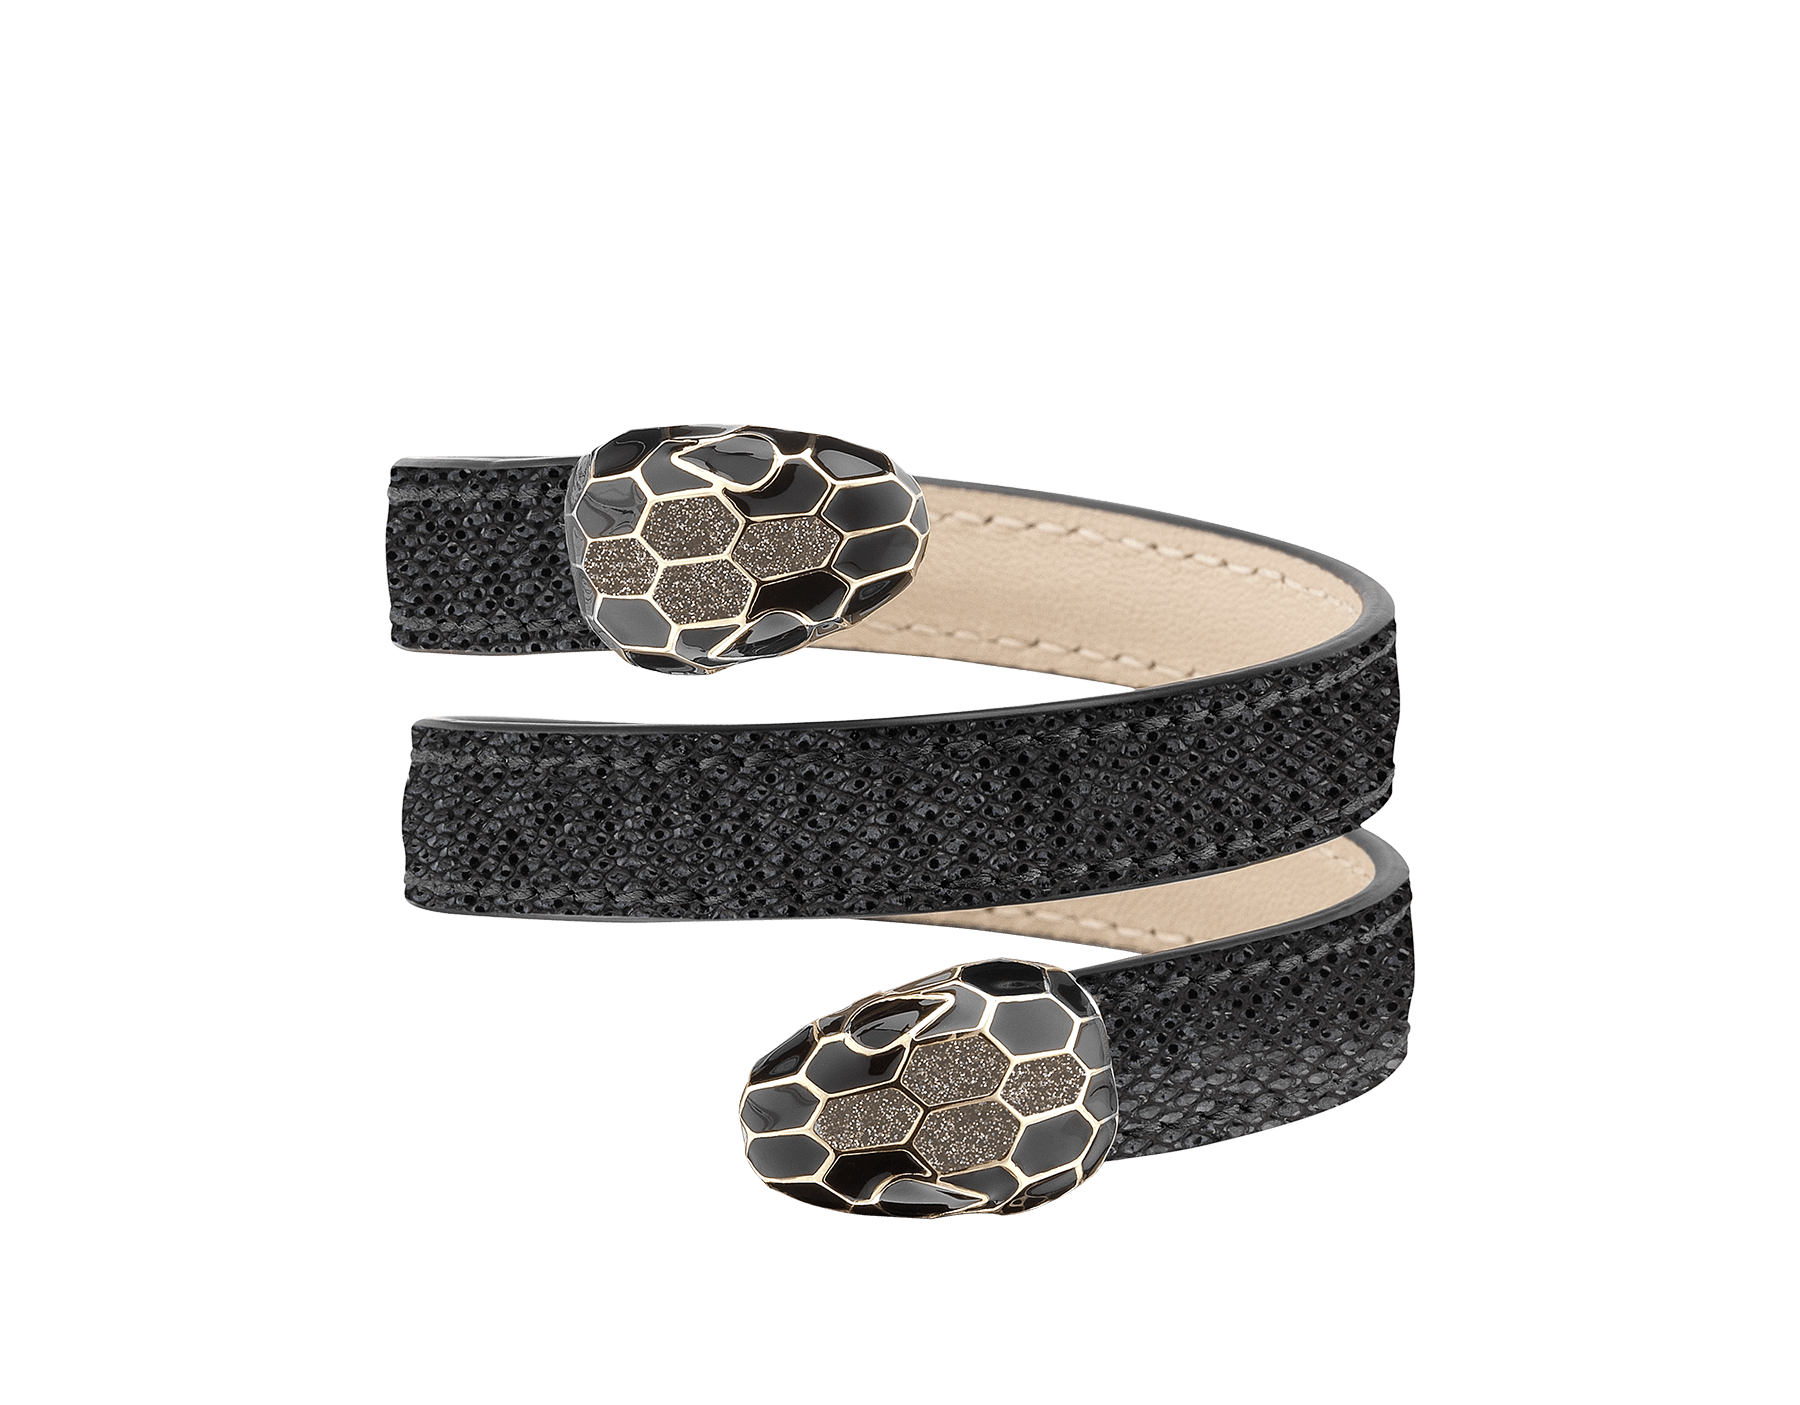 Multi-coiled rigid Cleopatra bracelet in moon silver metallic karung skin, with brass light gold plated hardware. Double tempting Serpenti head finished in glitter silver and black enamel, with eyes in black enamel. Cleopatra-MK-MS image 1